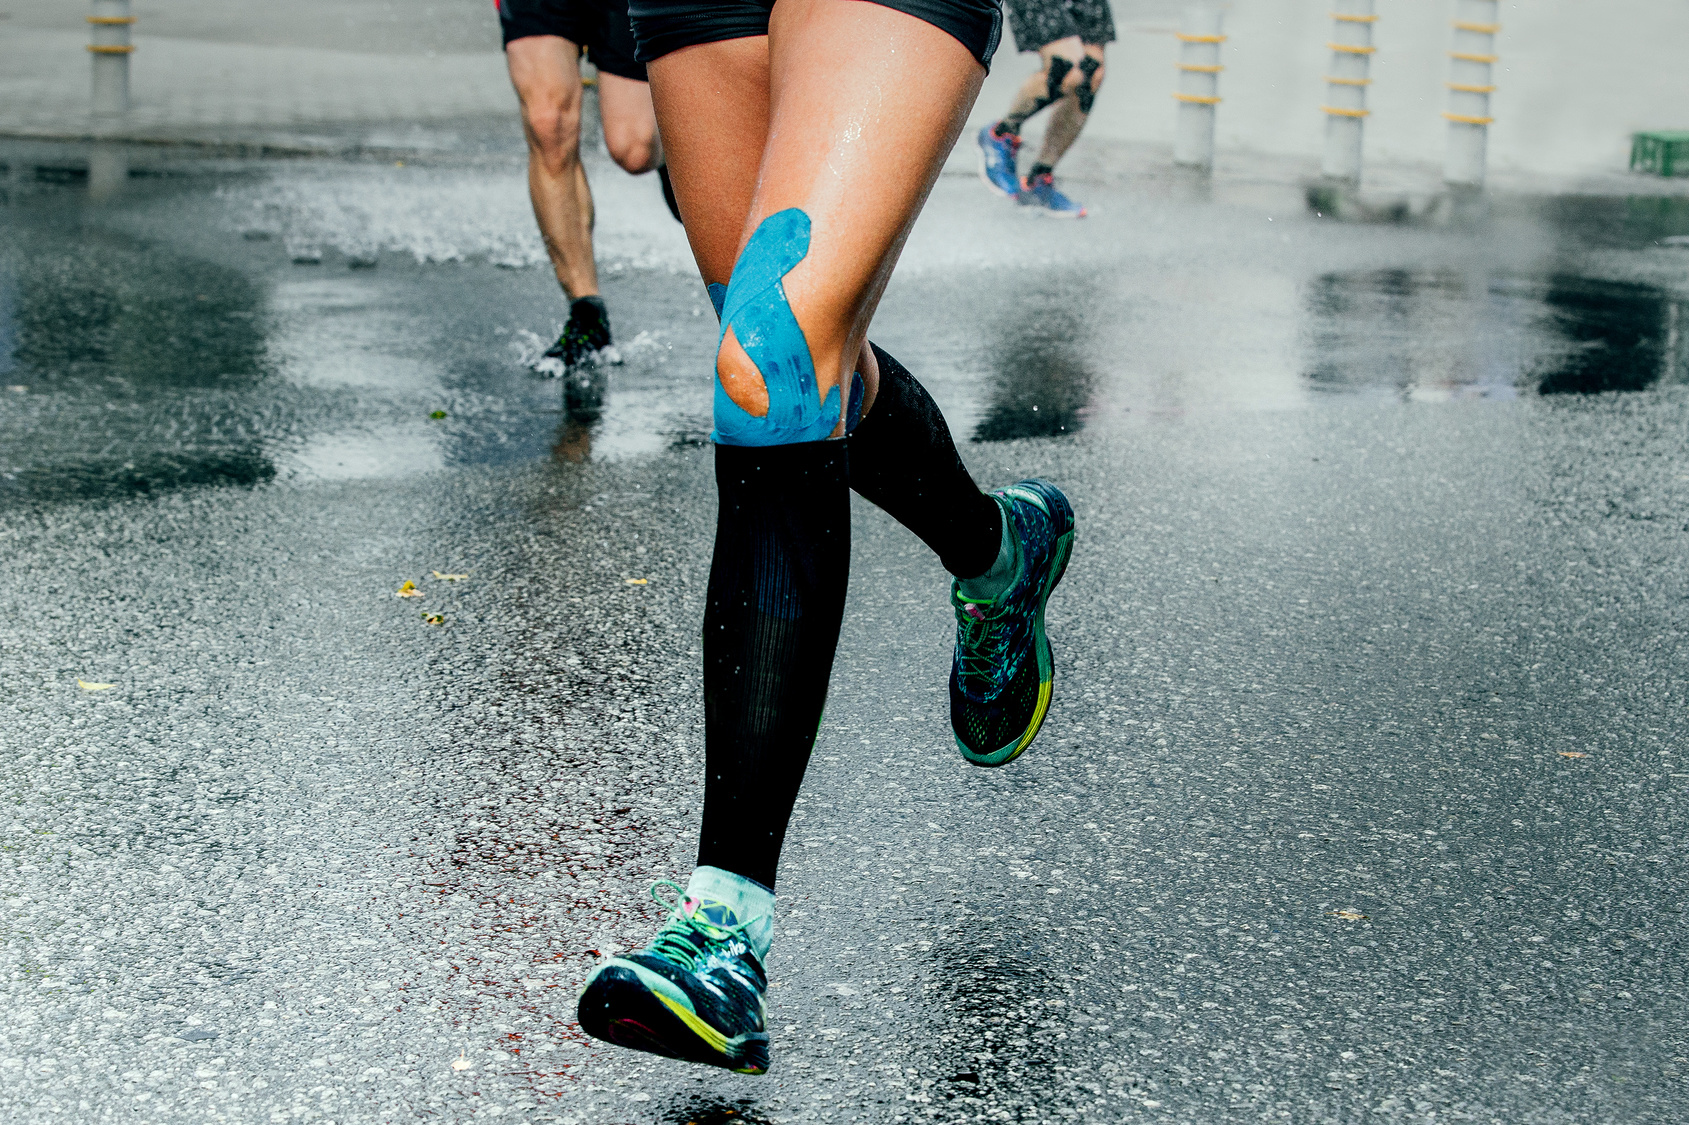 runner suffering from Runner's Knee